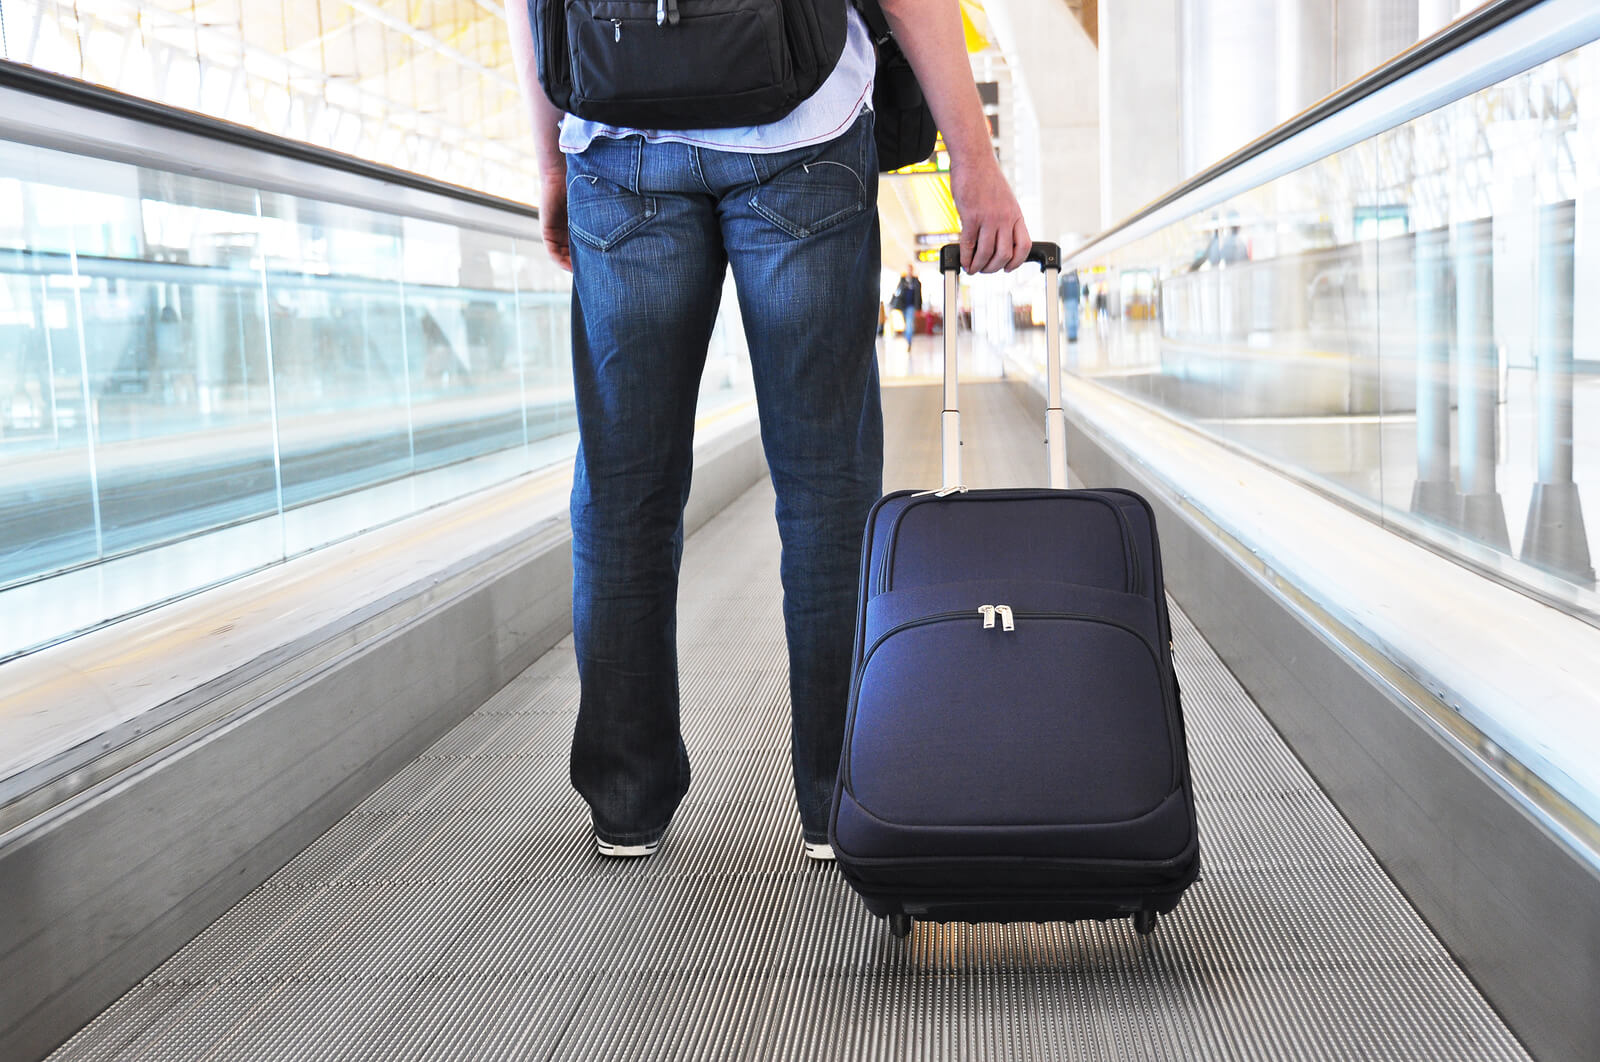 traveler with bag in airport